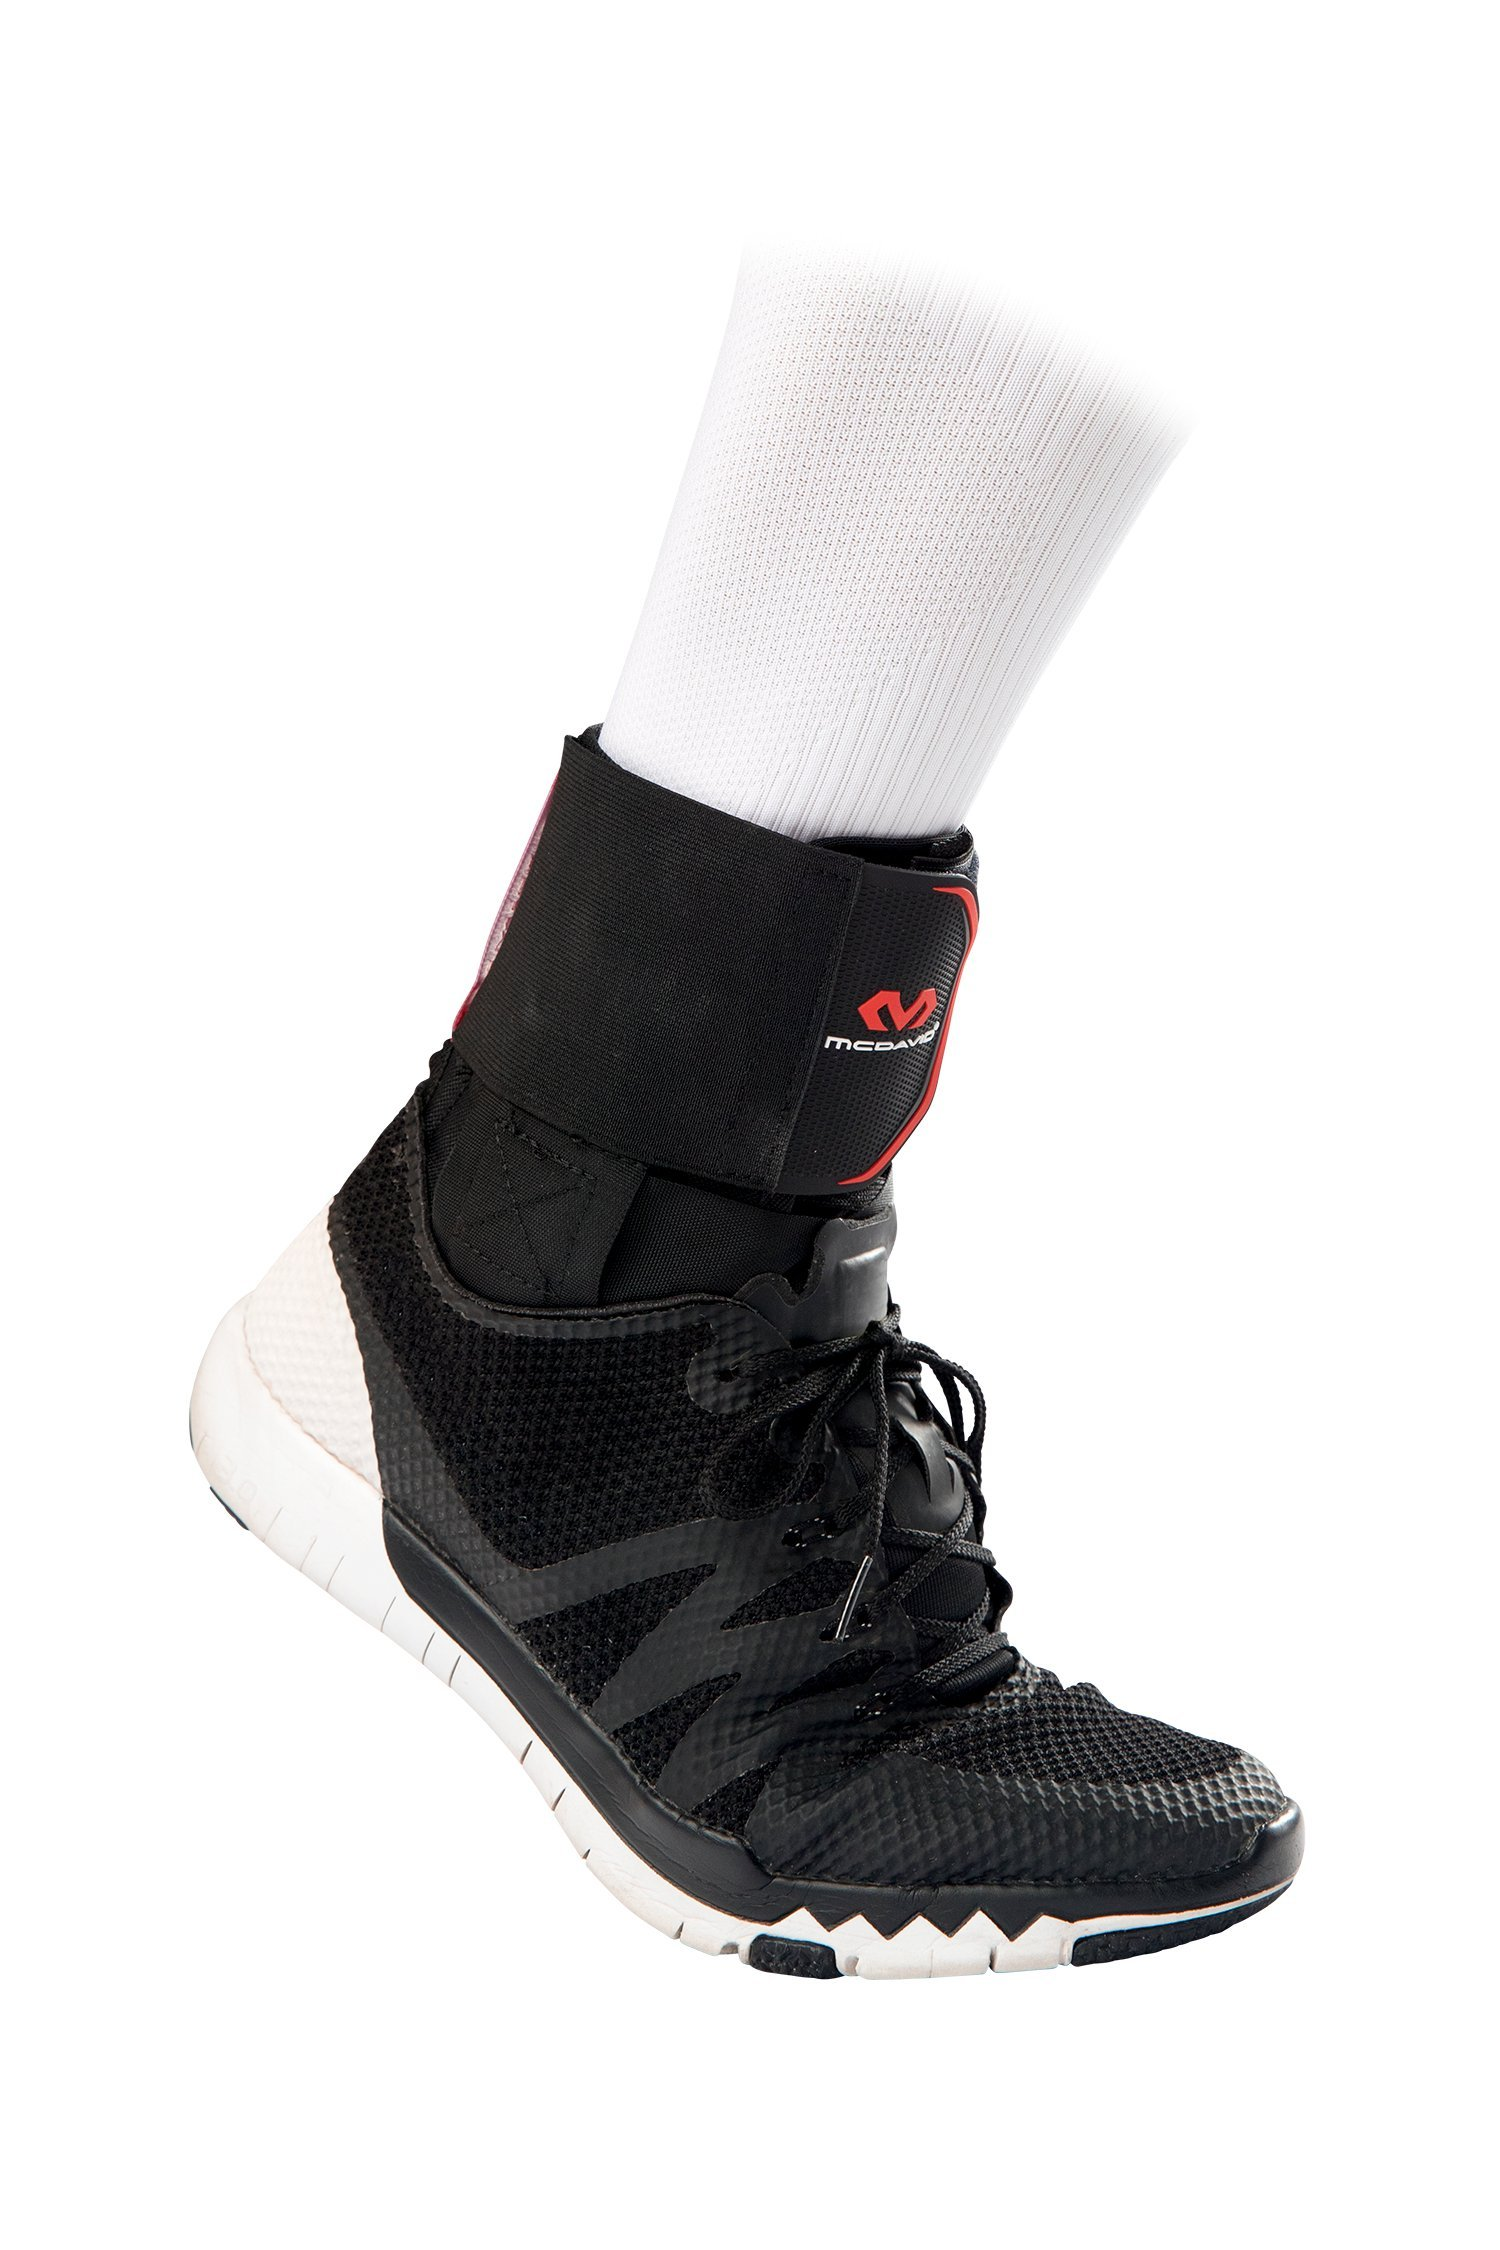 McDavid Level 3 Ankle Brace with Straps, Gray, X-Small by McDavid (Image #5)